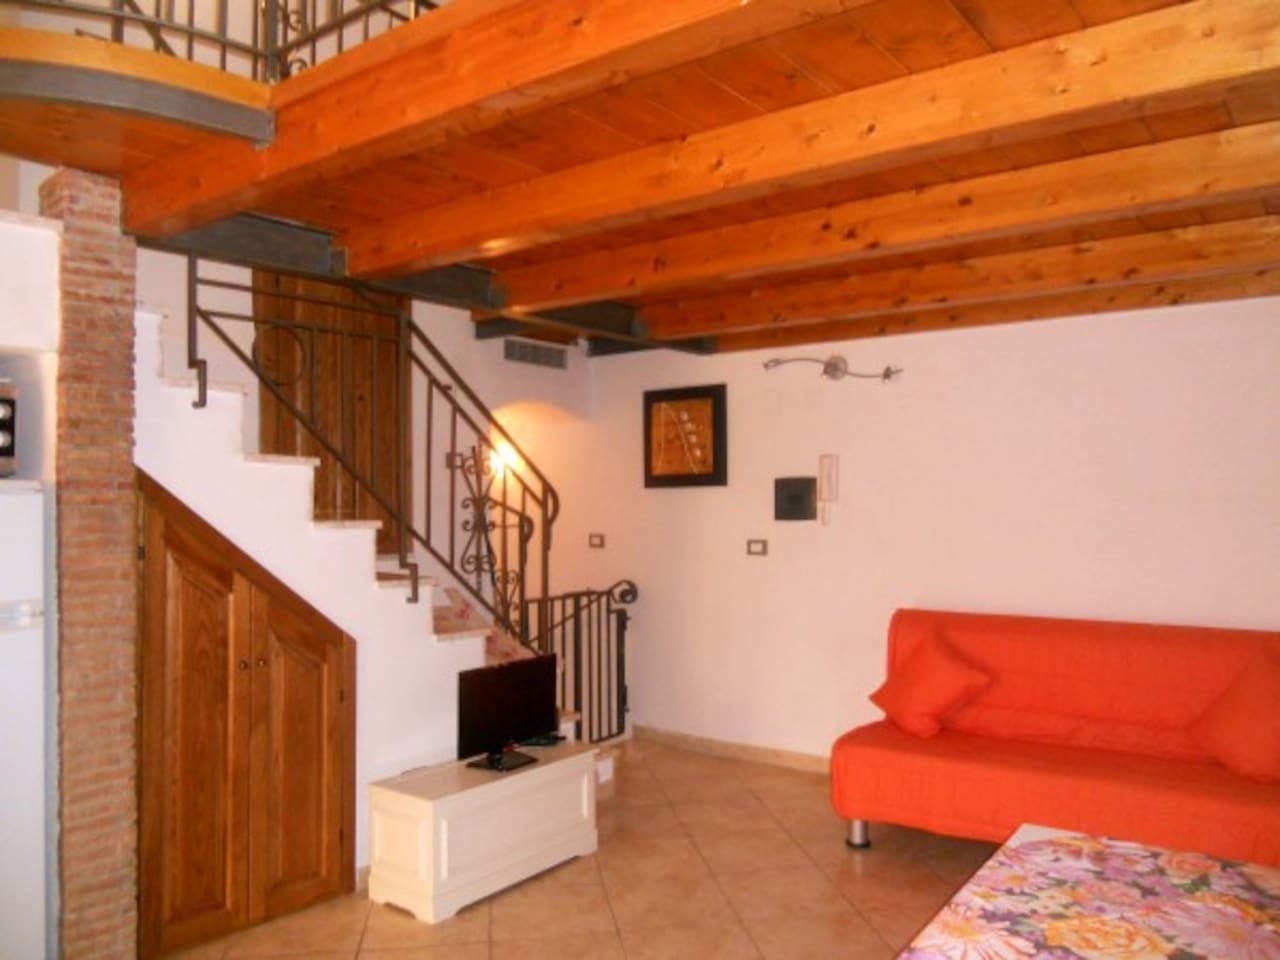 Loft Apartment in Gaeta #2